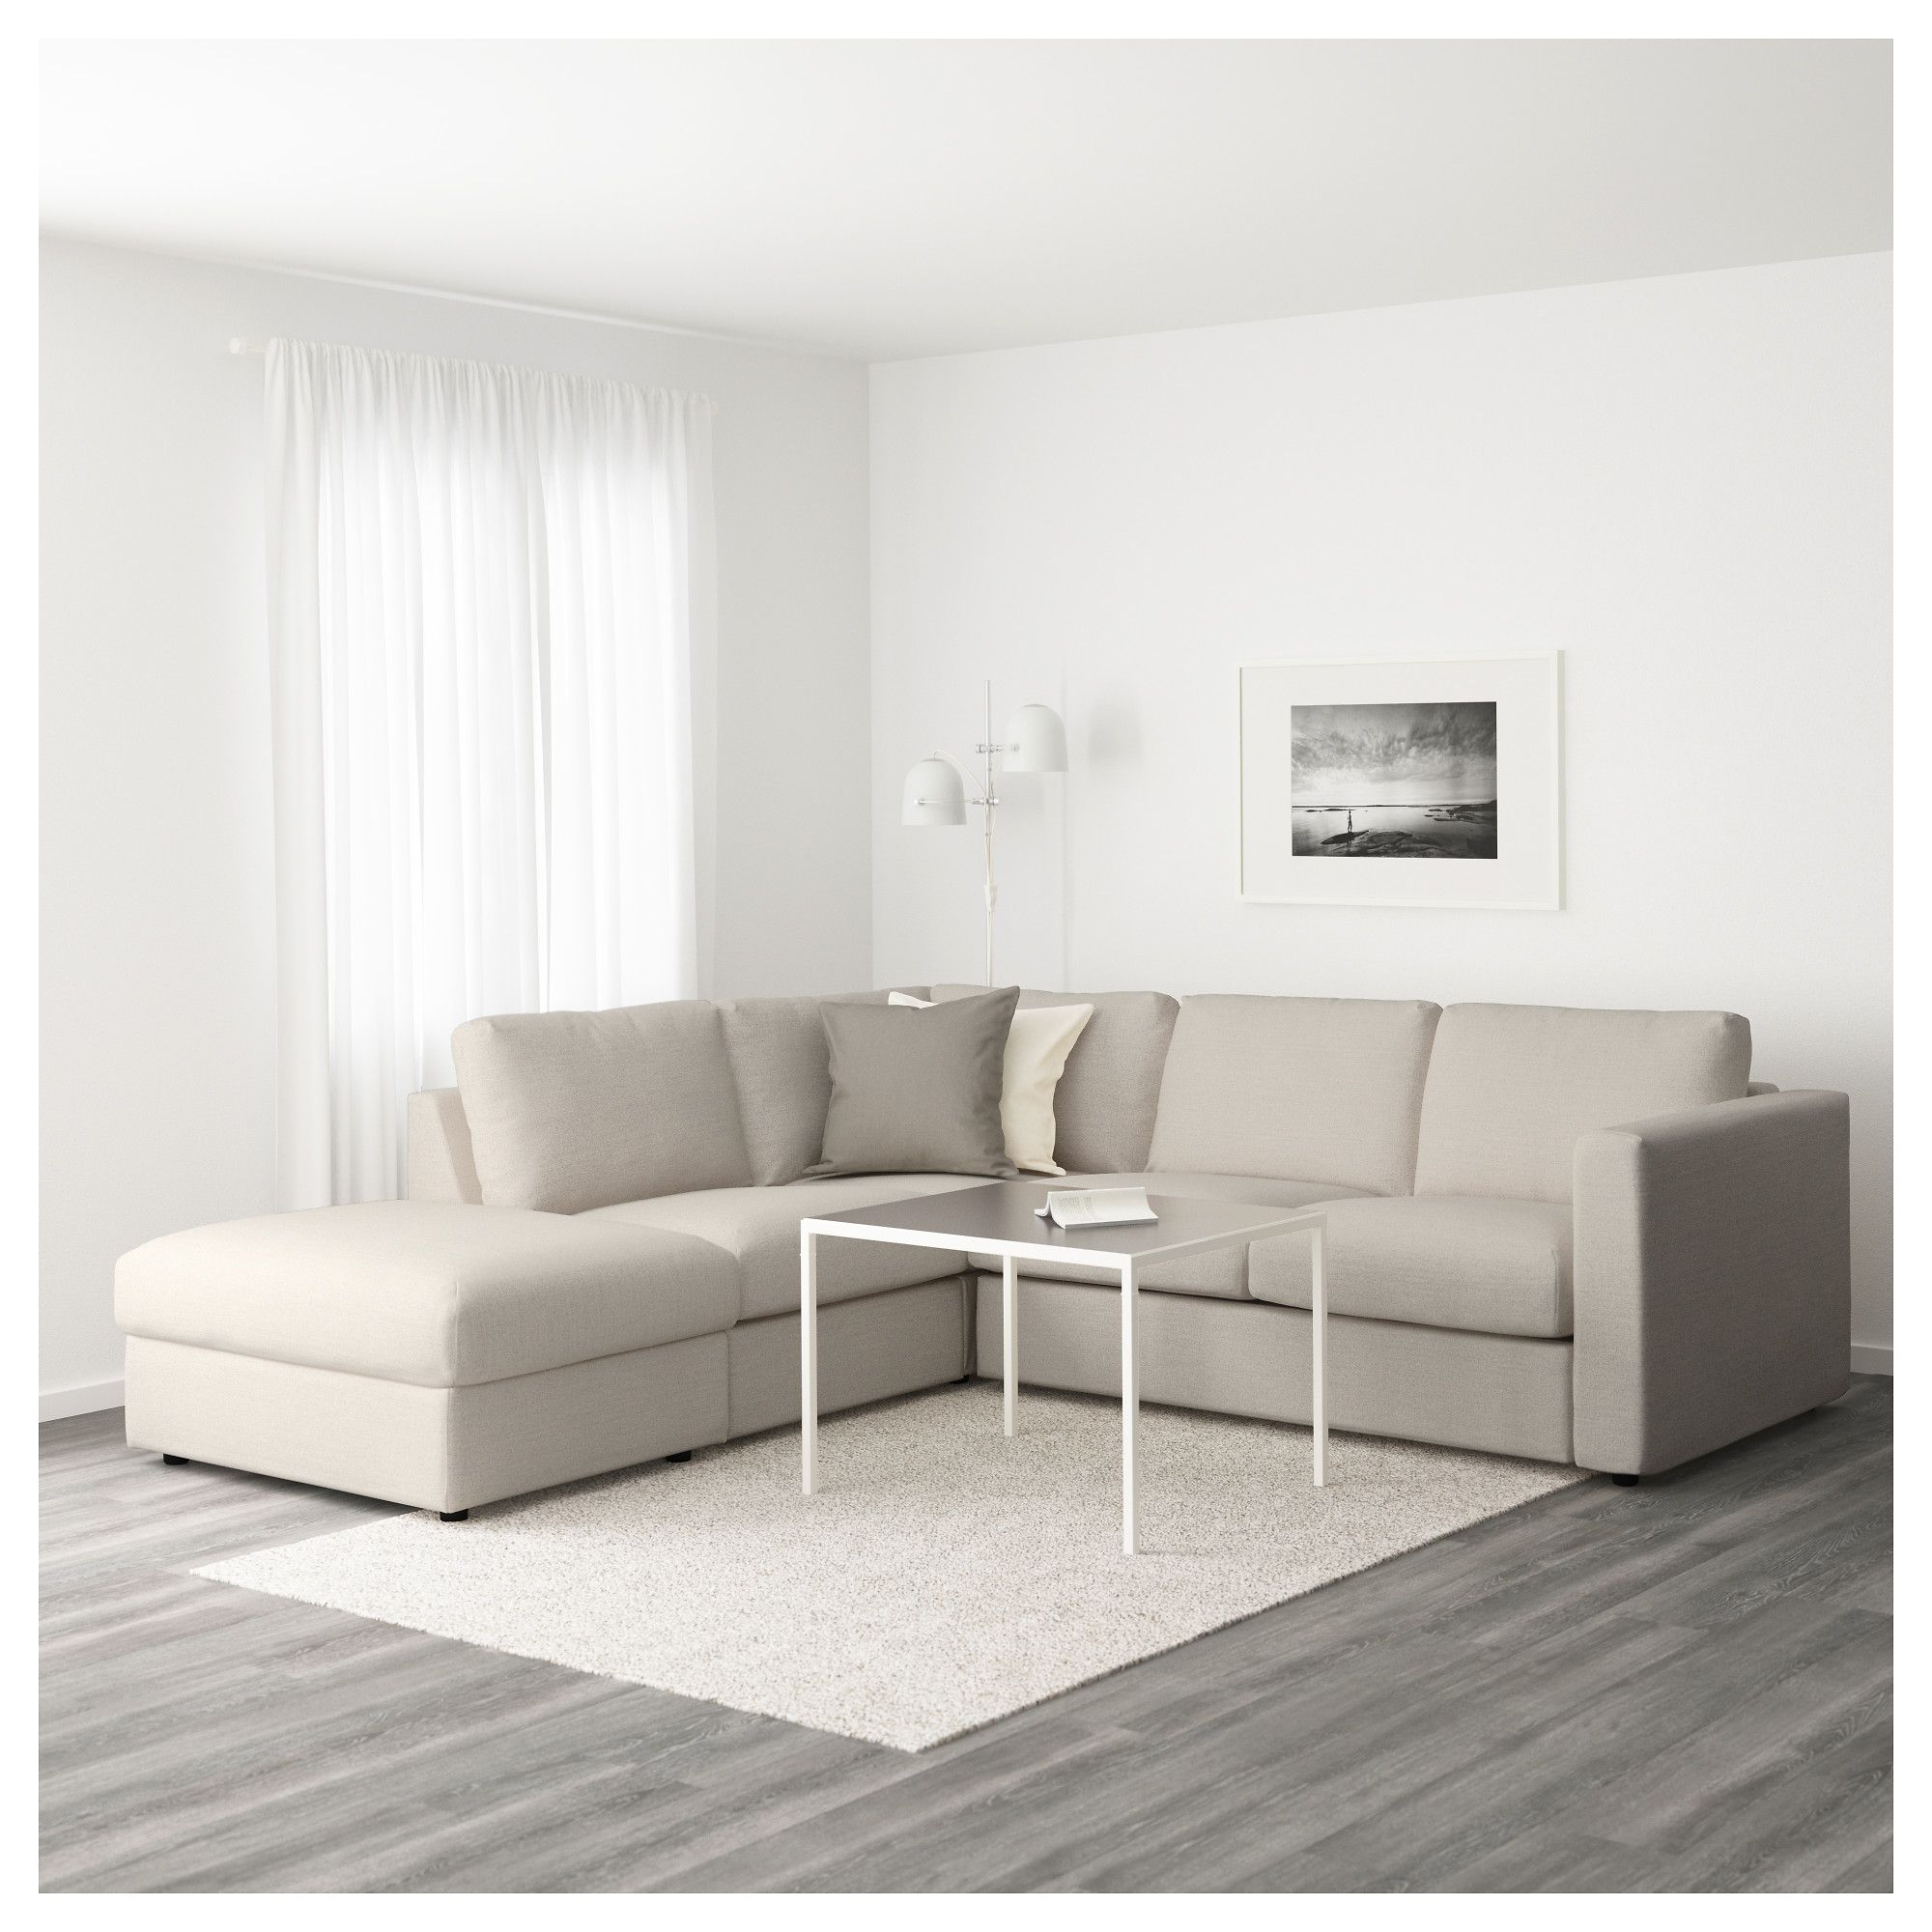 Furniture Home Furnishings Find Your Inspiration Modern Sectional Ikea Vimle Sectional Chaise